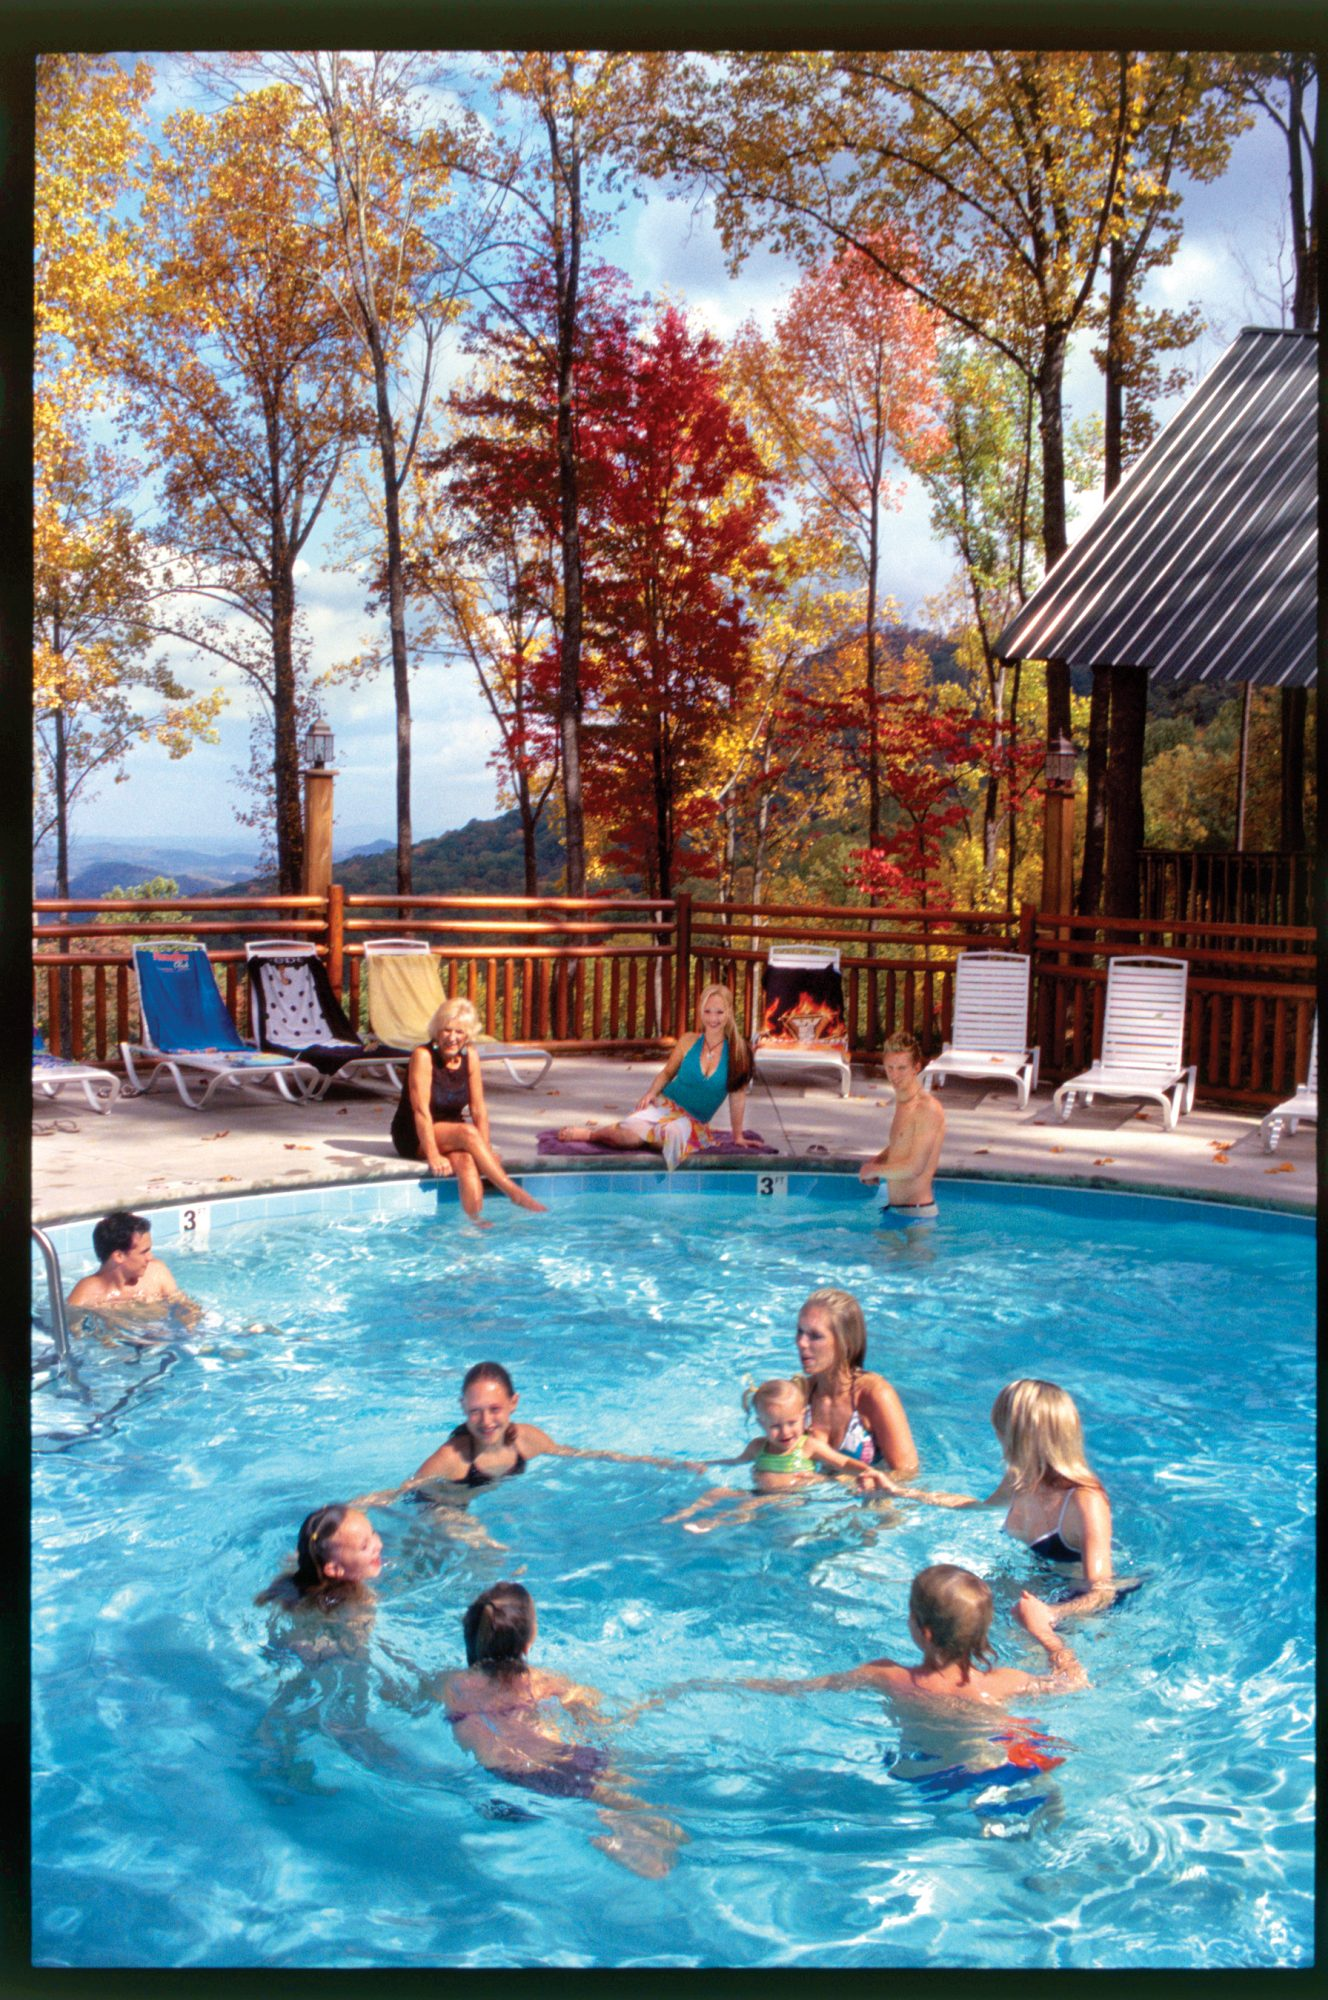 rocky cabin with best view trip the cabins fall lands for national mountains creek travel vacation mountain rent a leisure in smoky parks ideas